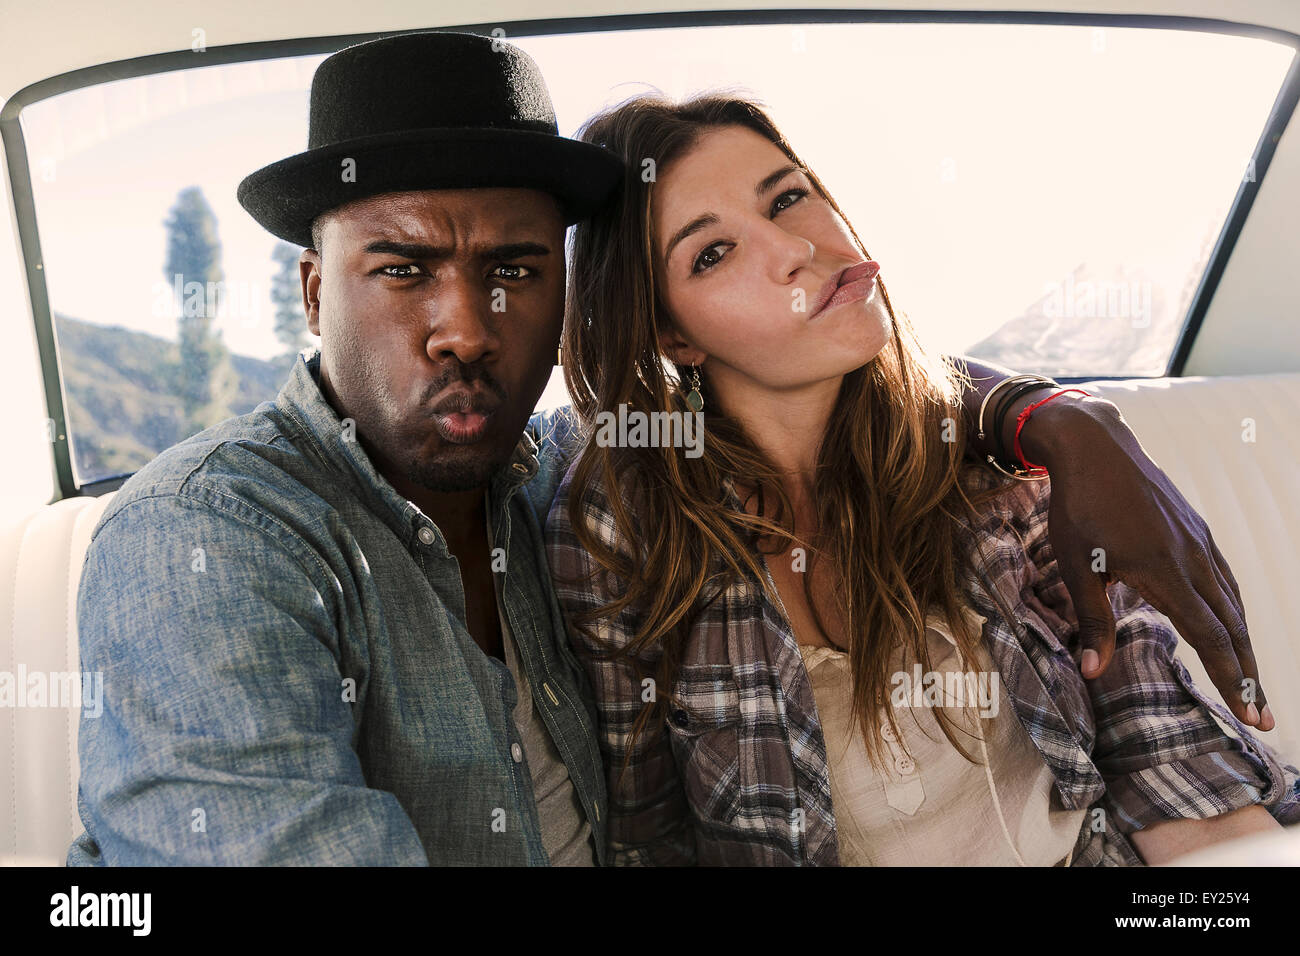 Portrait of couple pulling faces in back seat of car Photo Stock